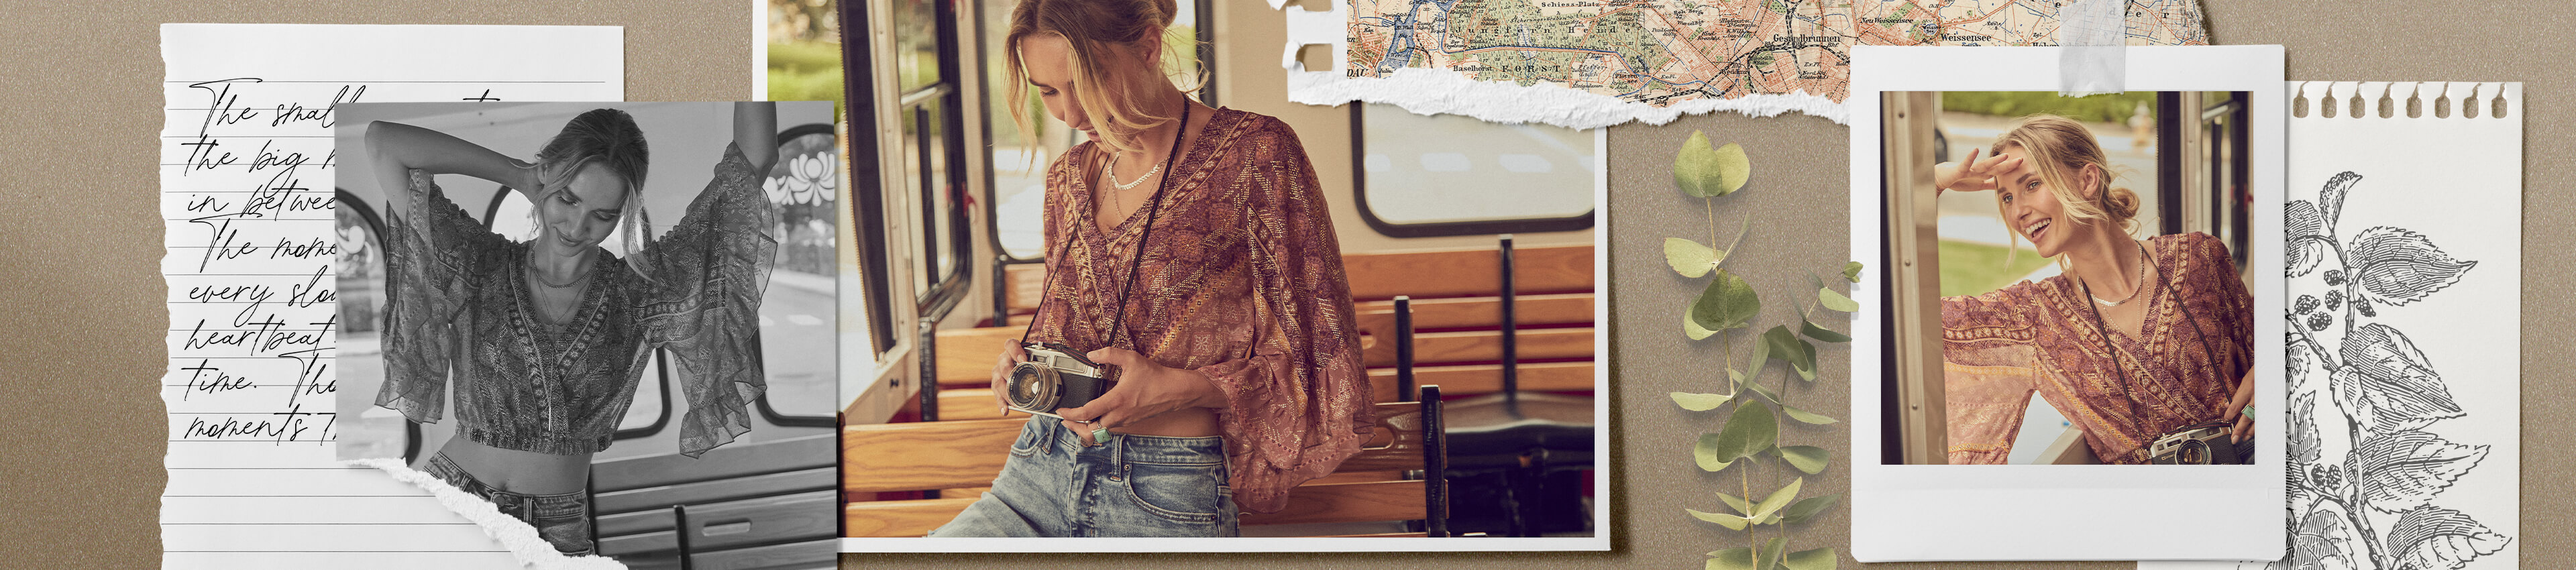 A gal sitting in a trolley wearing a burgundy floral cropped top with light wash denim.